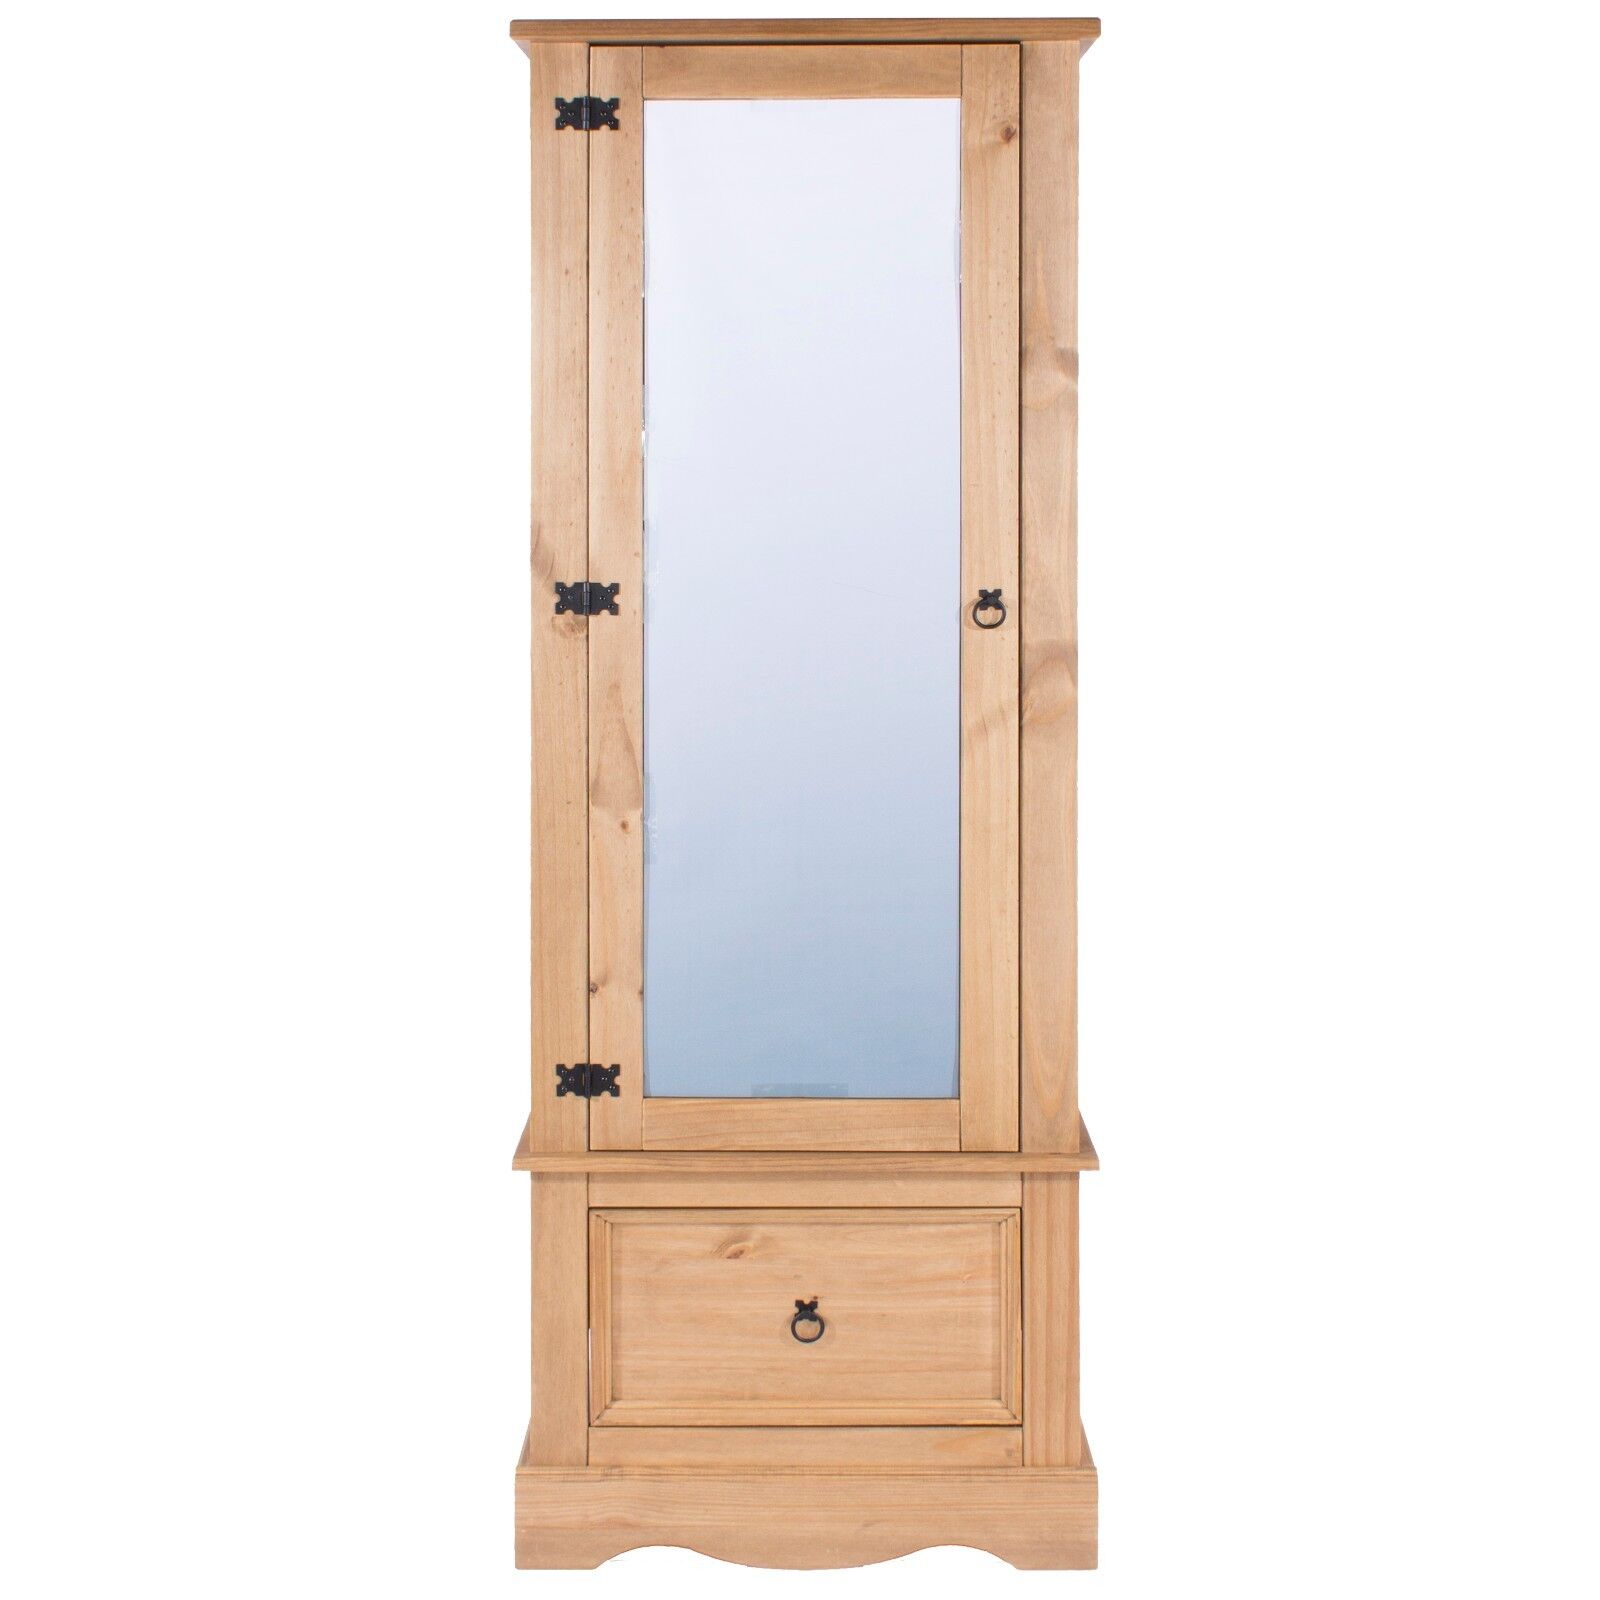 Armoire Habits Details About Corona 1 Mirrored Door Armoire Wardrobe 1 Drawer Solid Medium Wood Mexican Pine